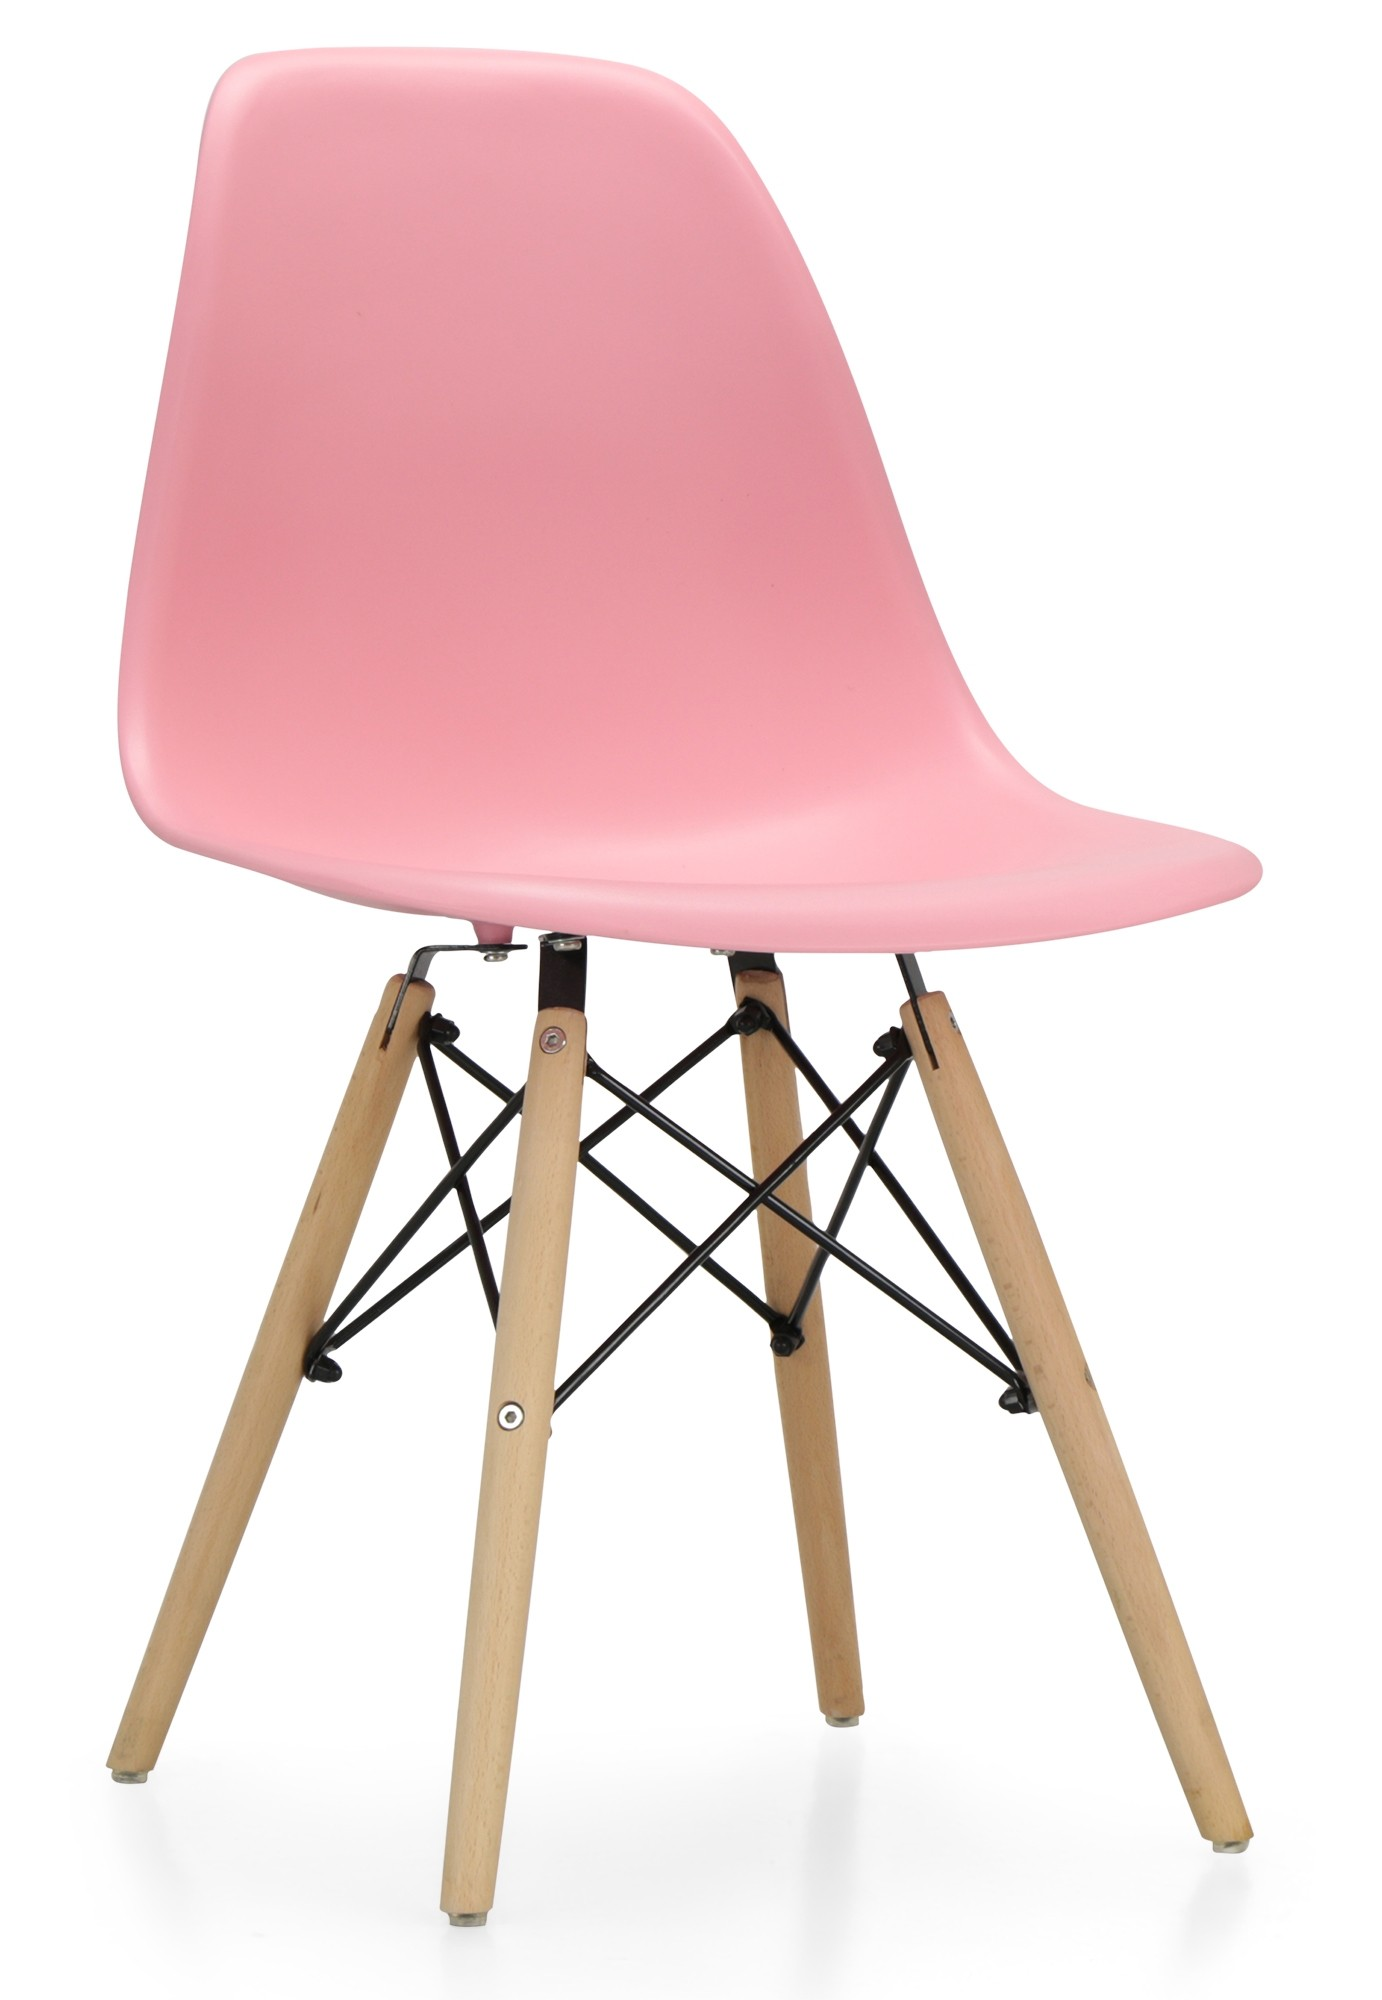 Eames pink replica designer chair designer chairs for Designer sofa replica